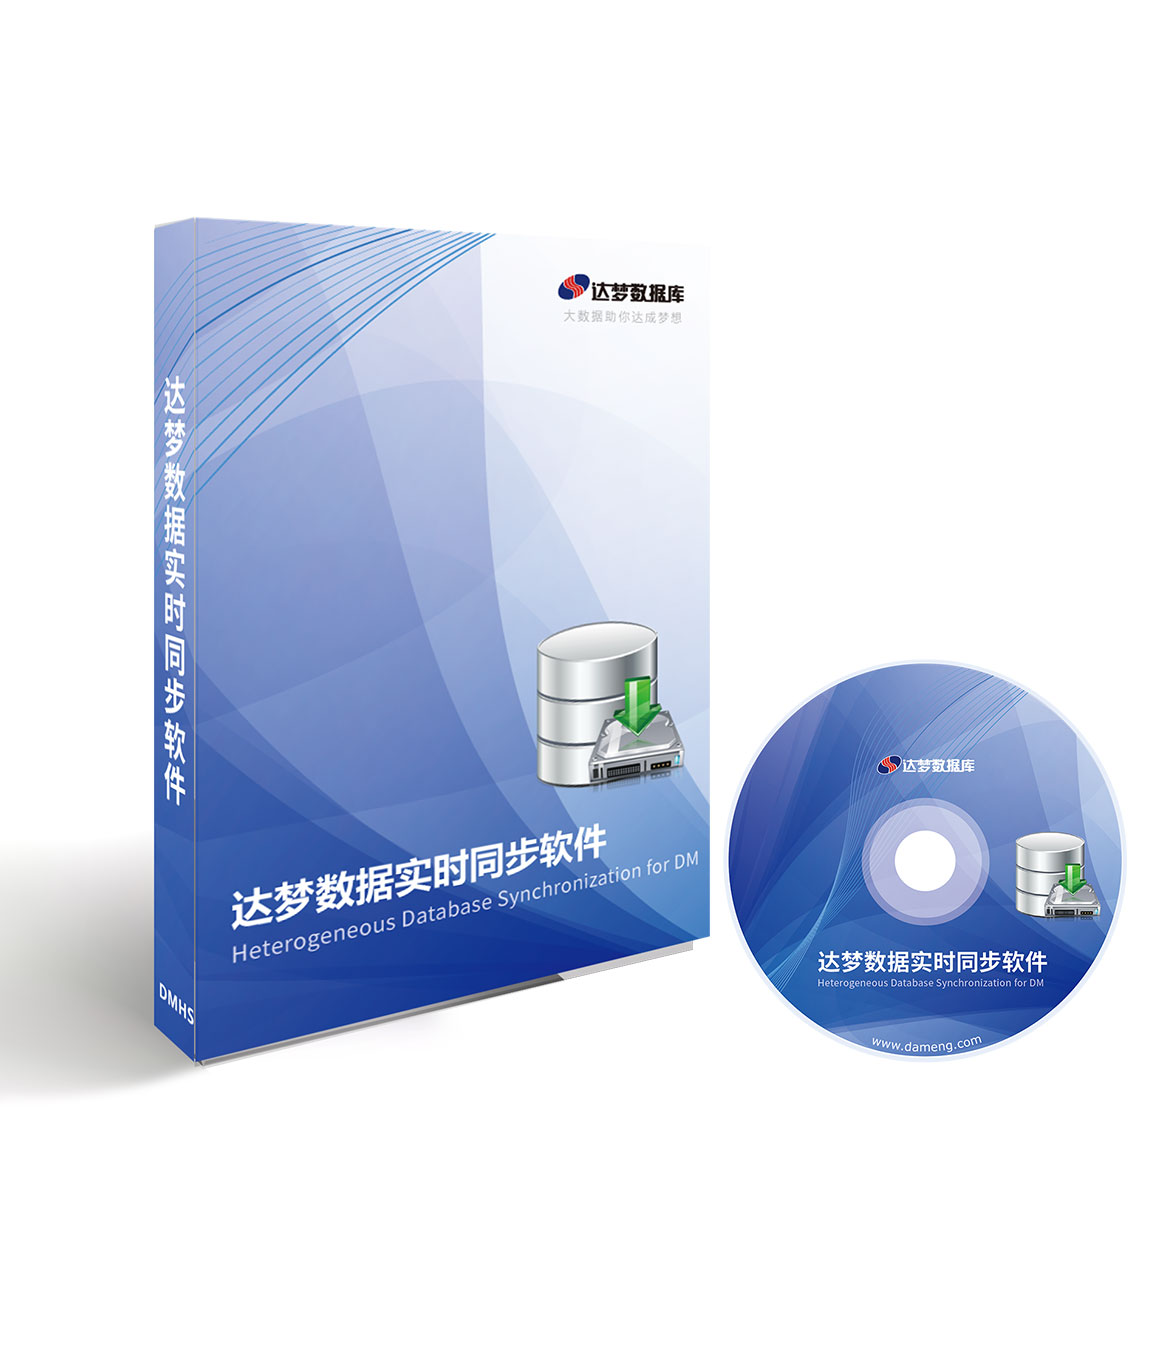 Dream data real-time synchronization software DMHS